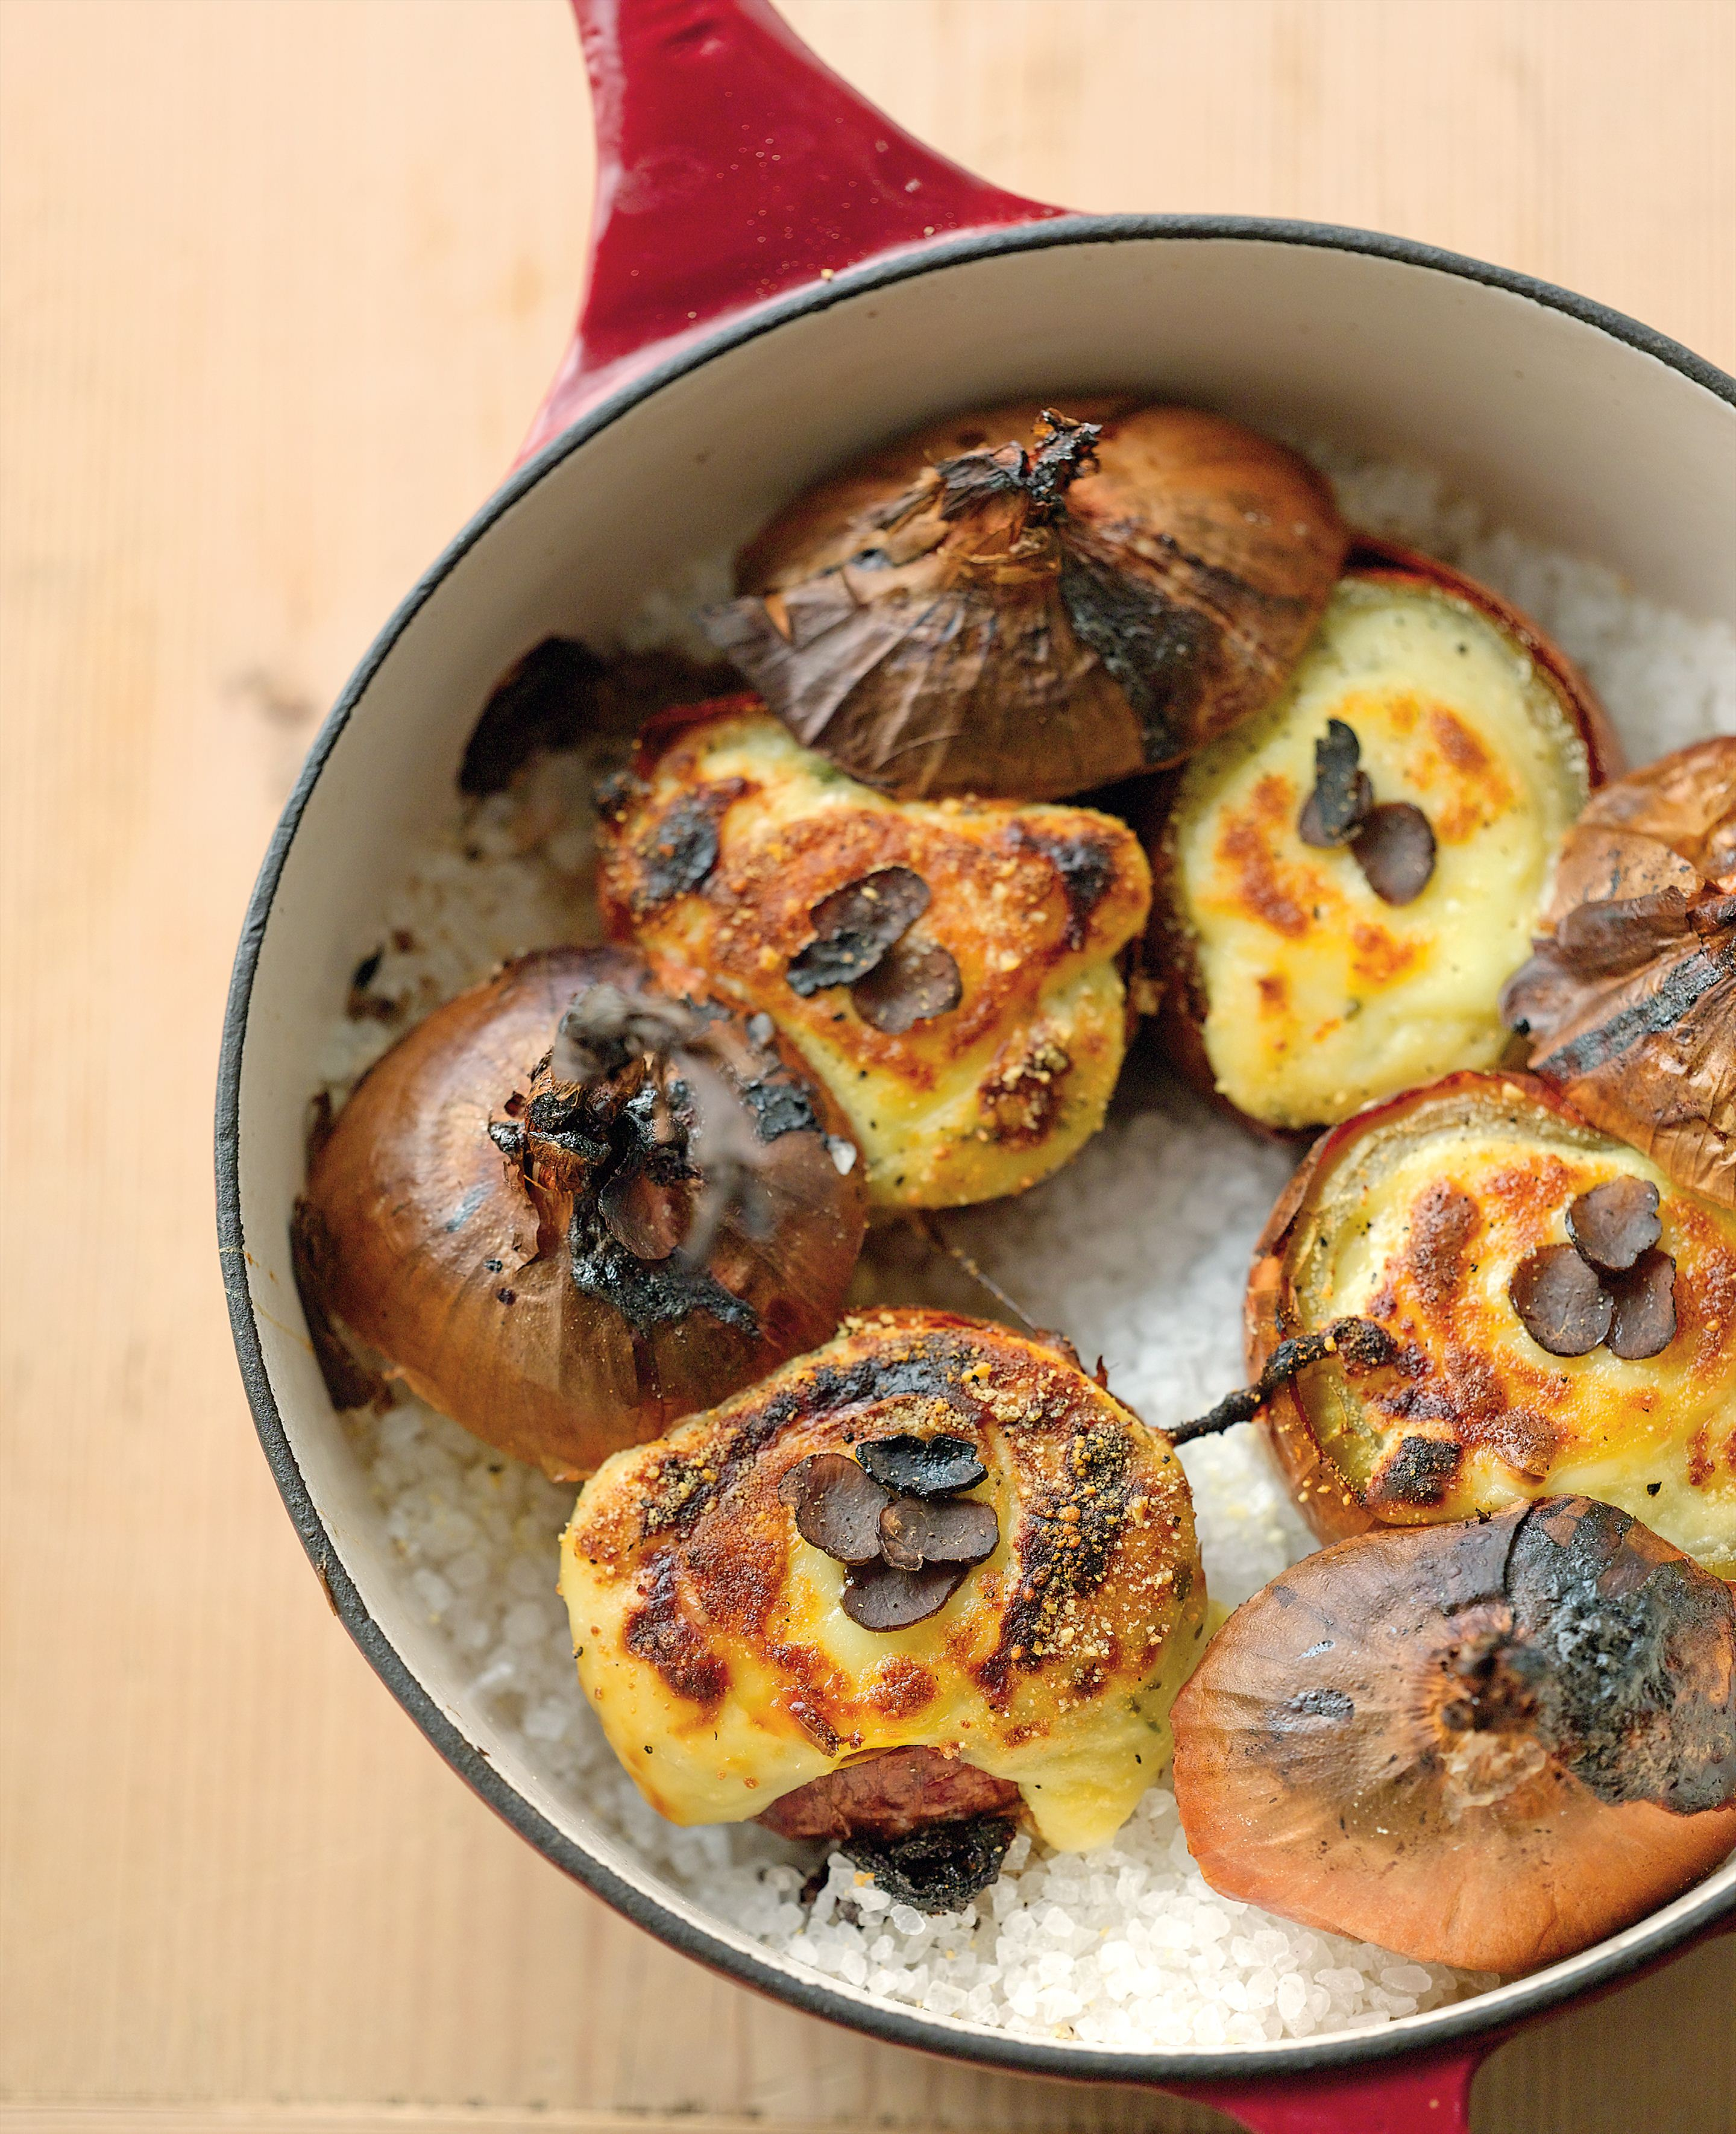 Salt-baked onions with truffled egg